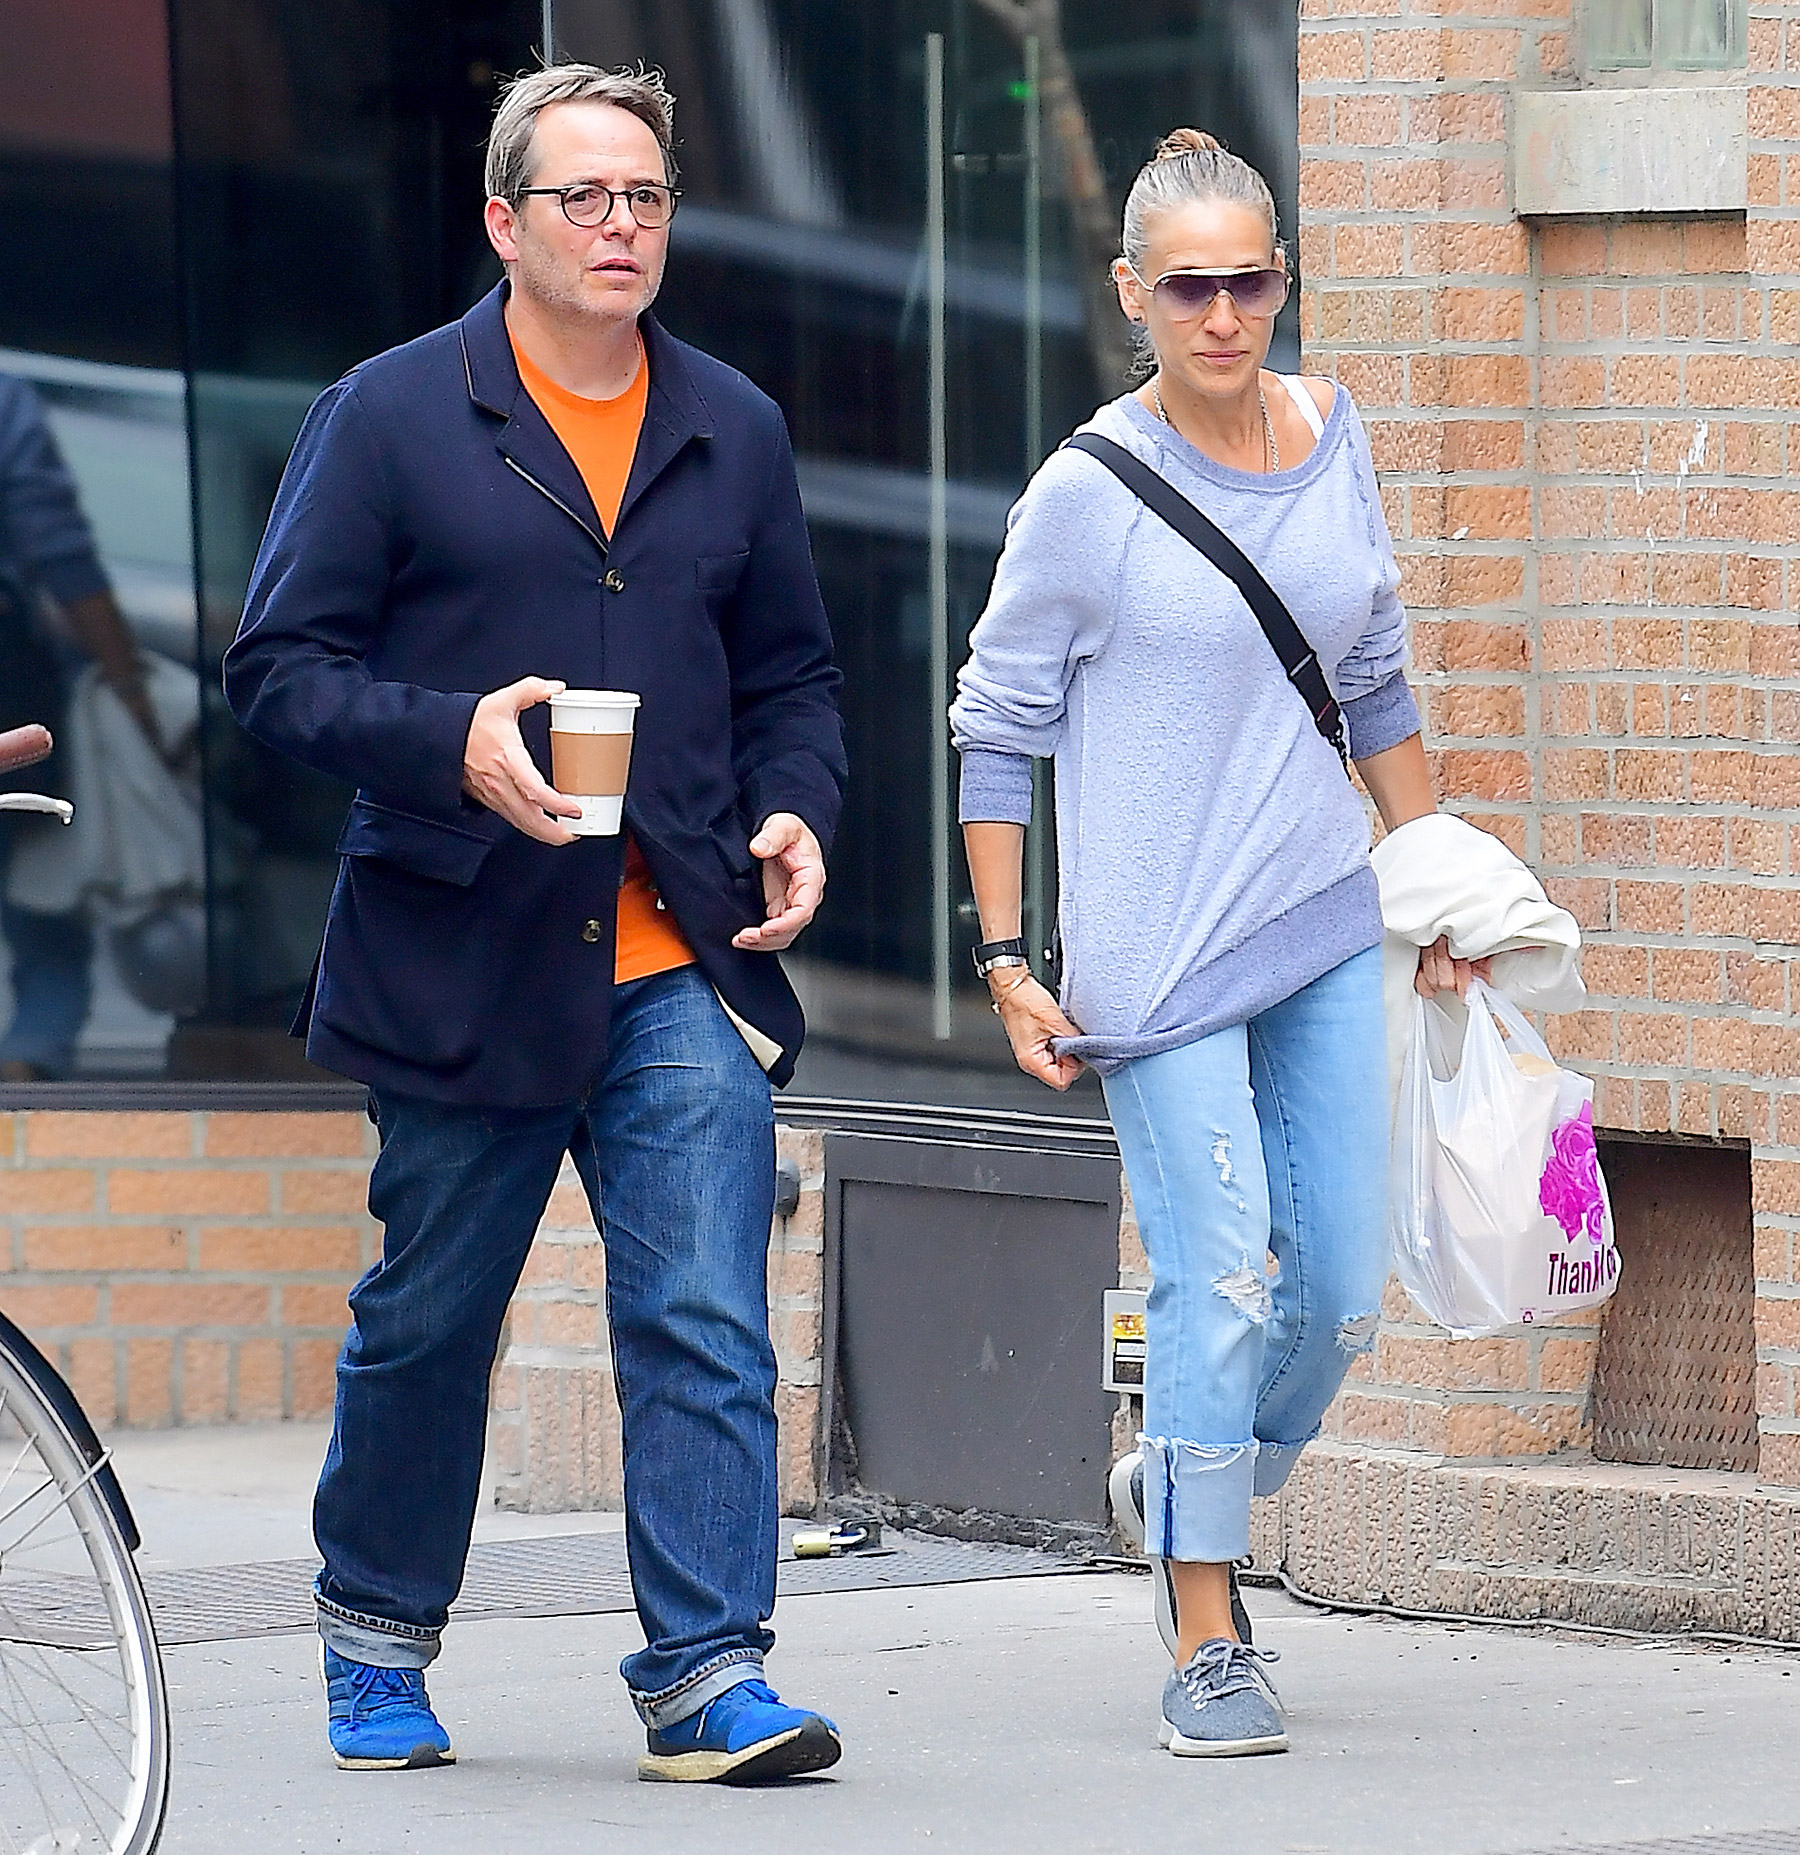 EXCLUSIVE: Sarah Jessica Parker And Matthew Broderick Enjoy Some Rare Alone Time While Getting Morning Coffee And Some Groceries